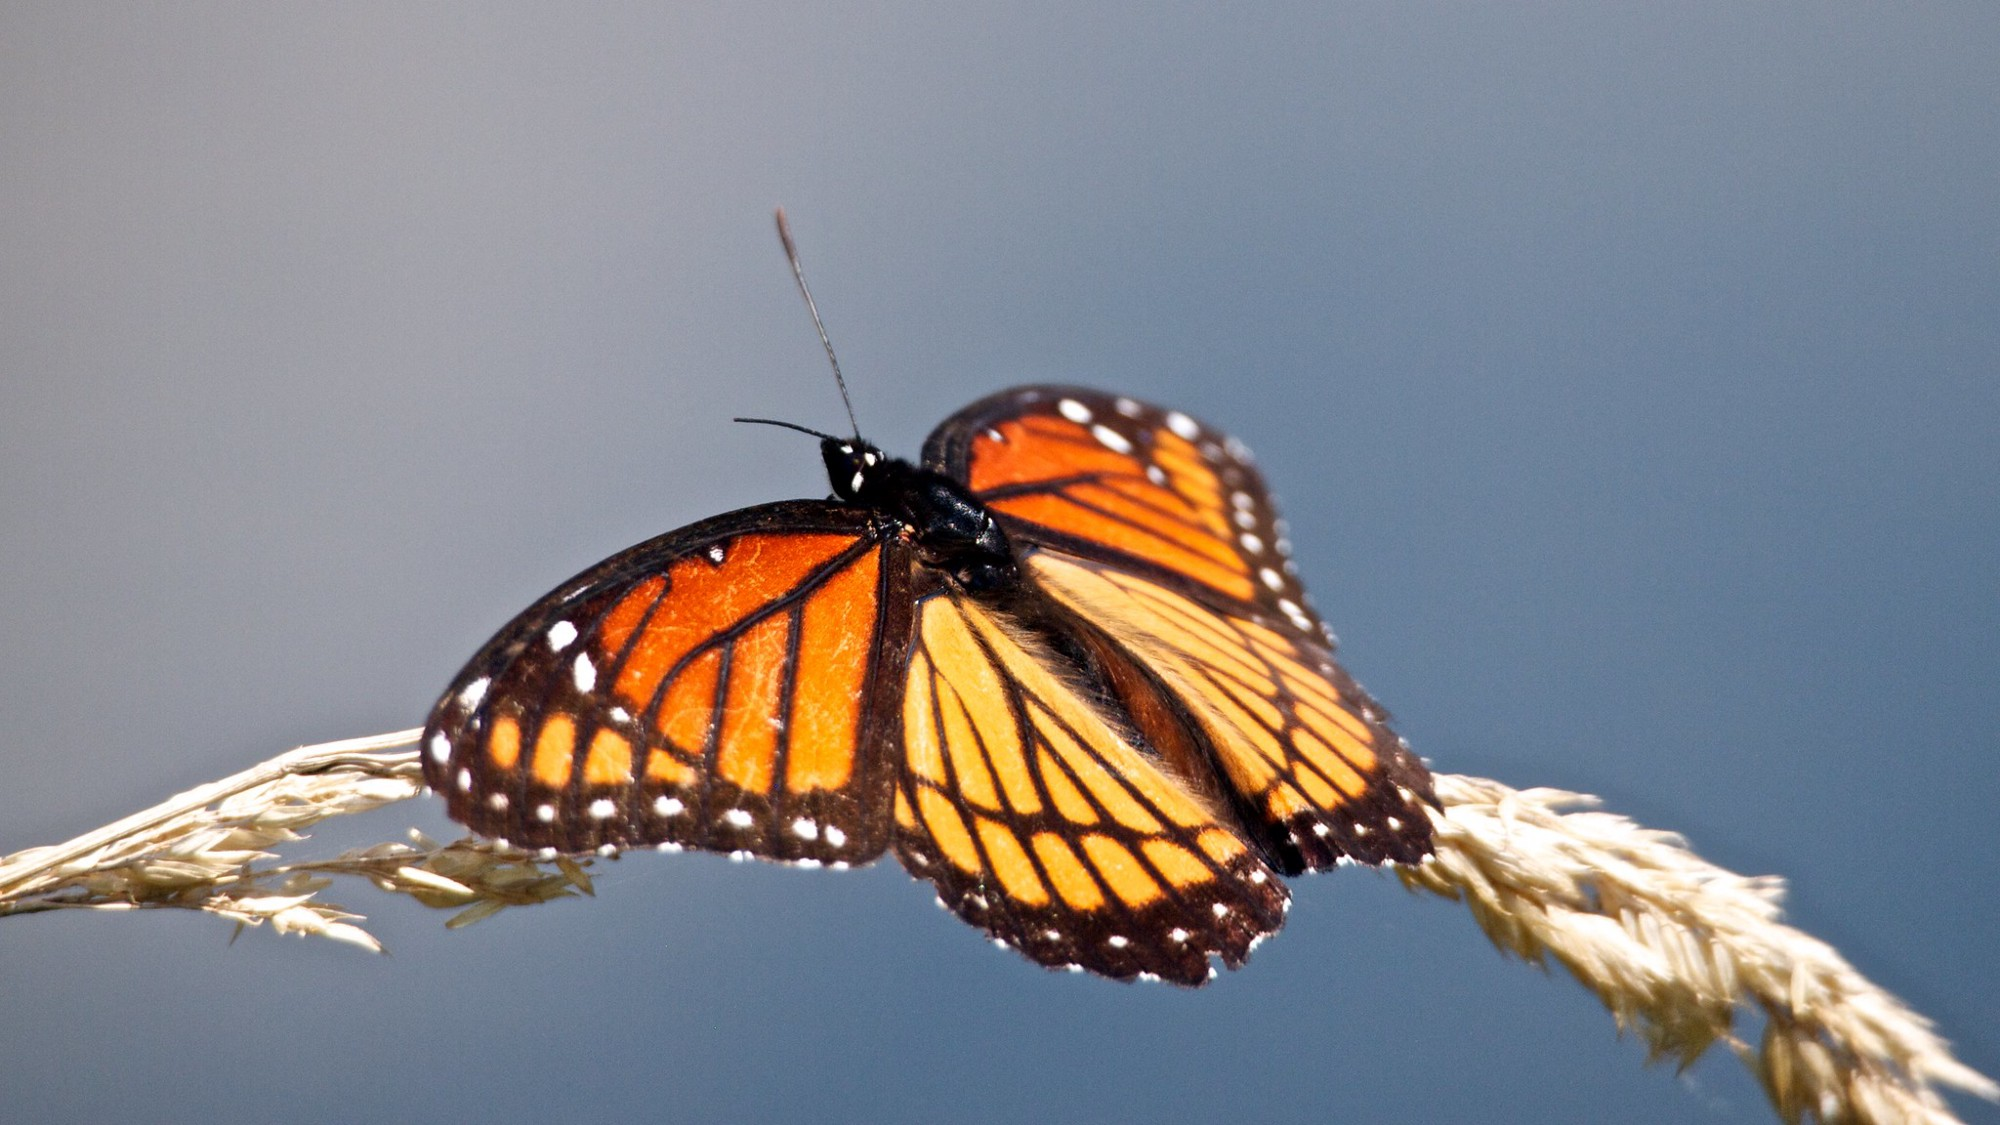 A viceroy butterfly rests on grass with water in the background.